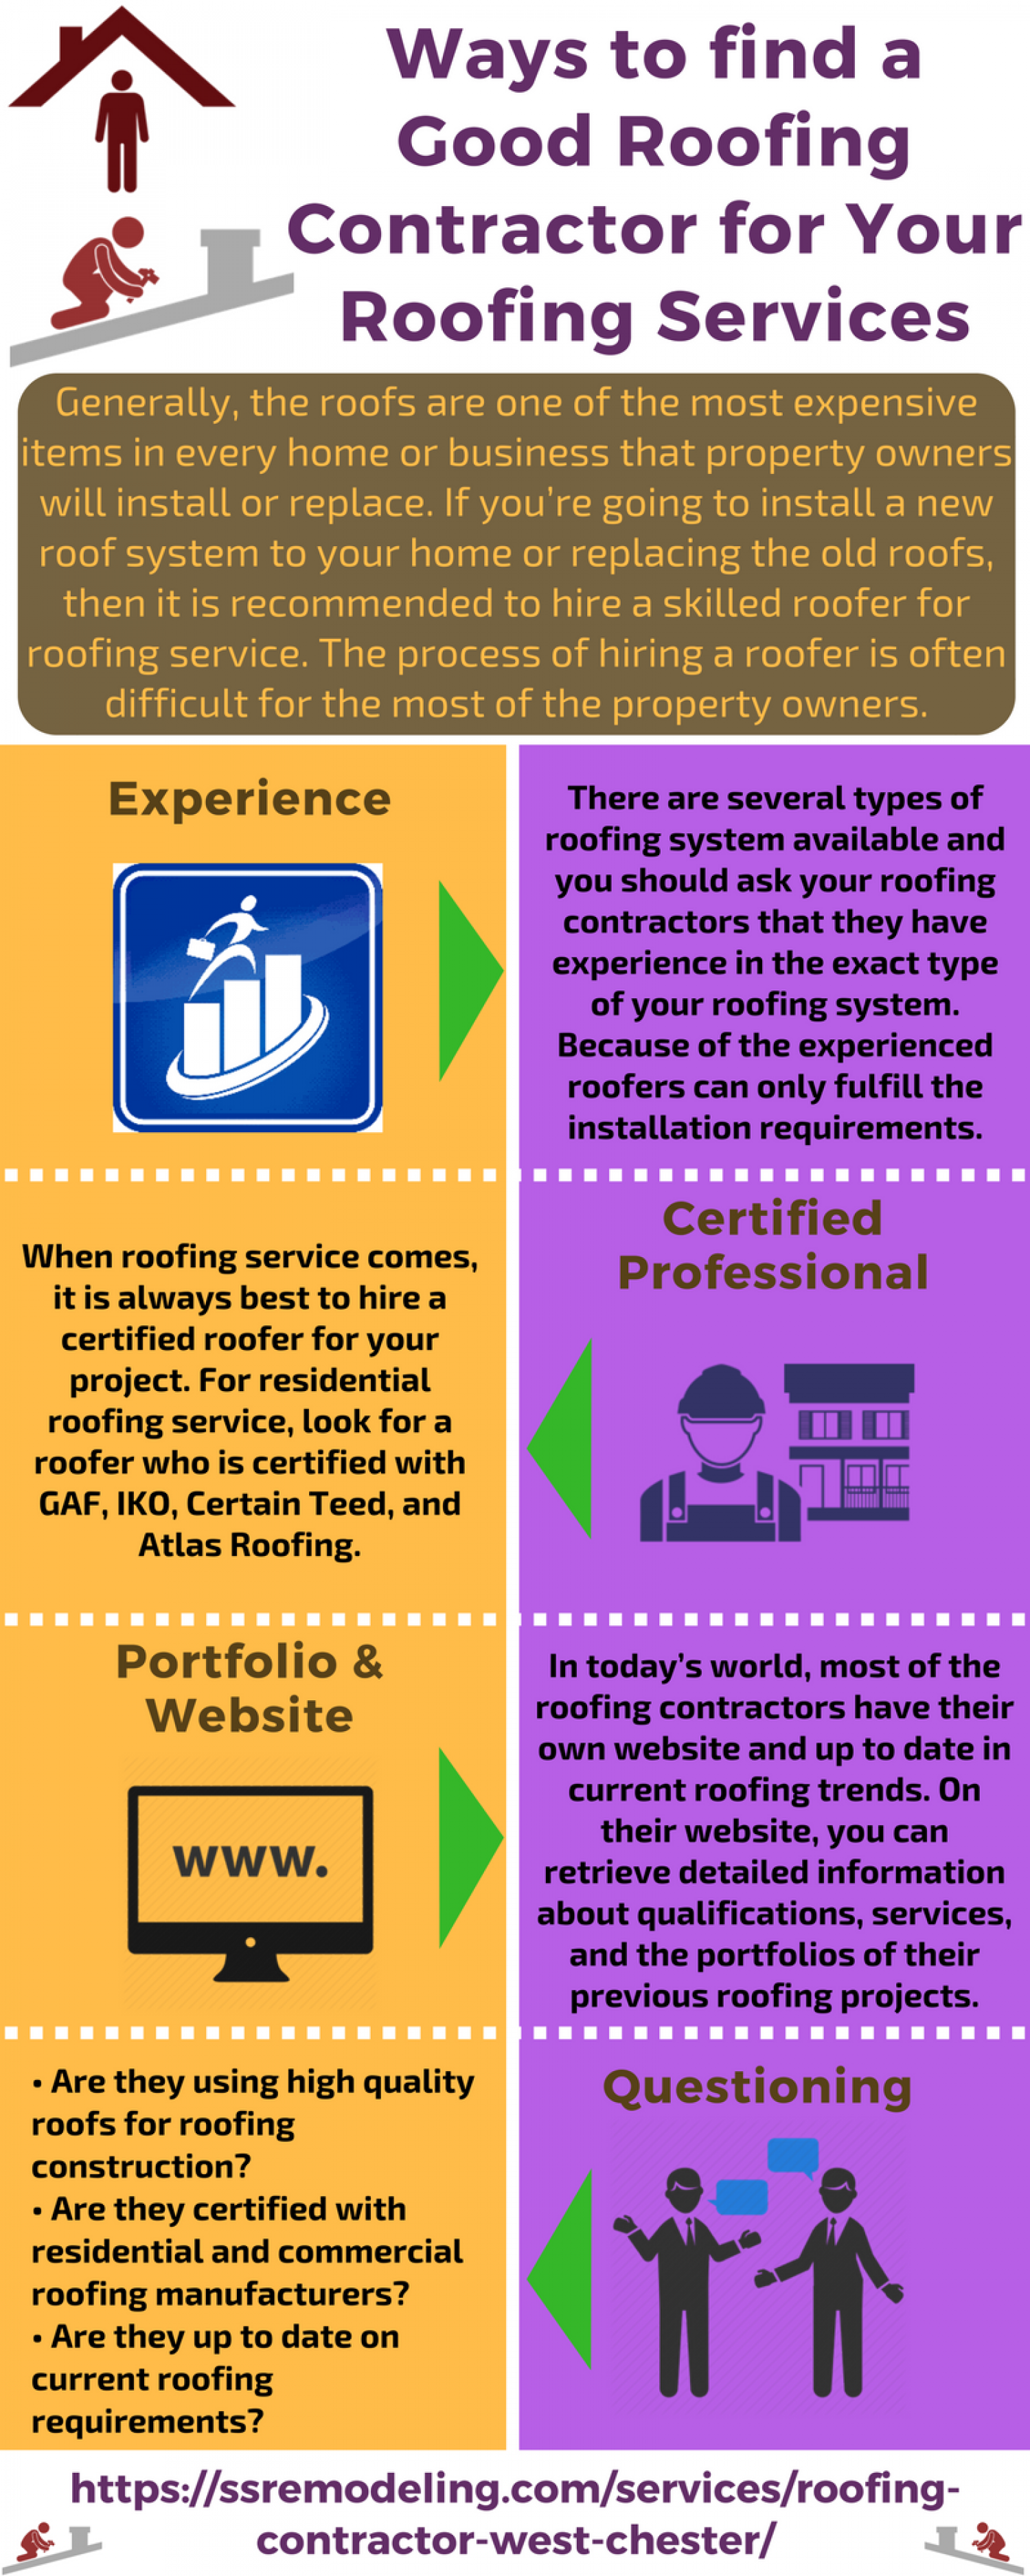 Ways to find a Good Roofing Contractor for Your Roofing Services